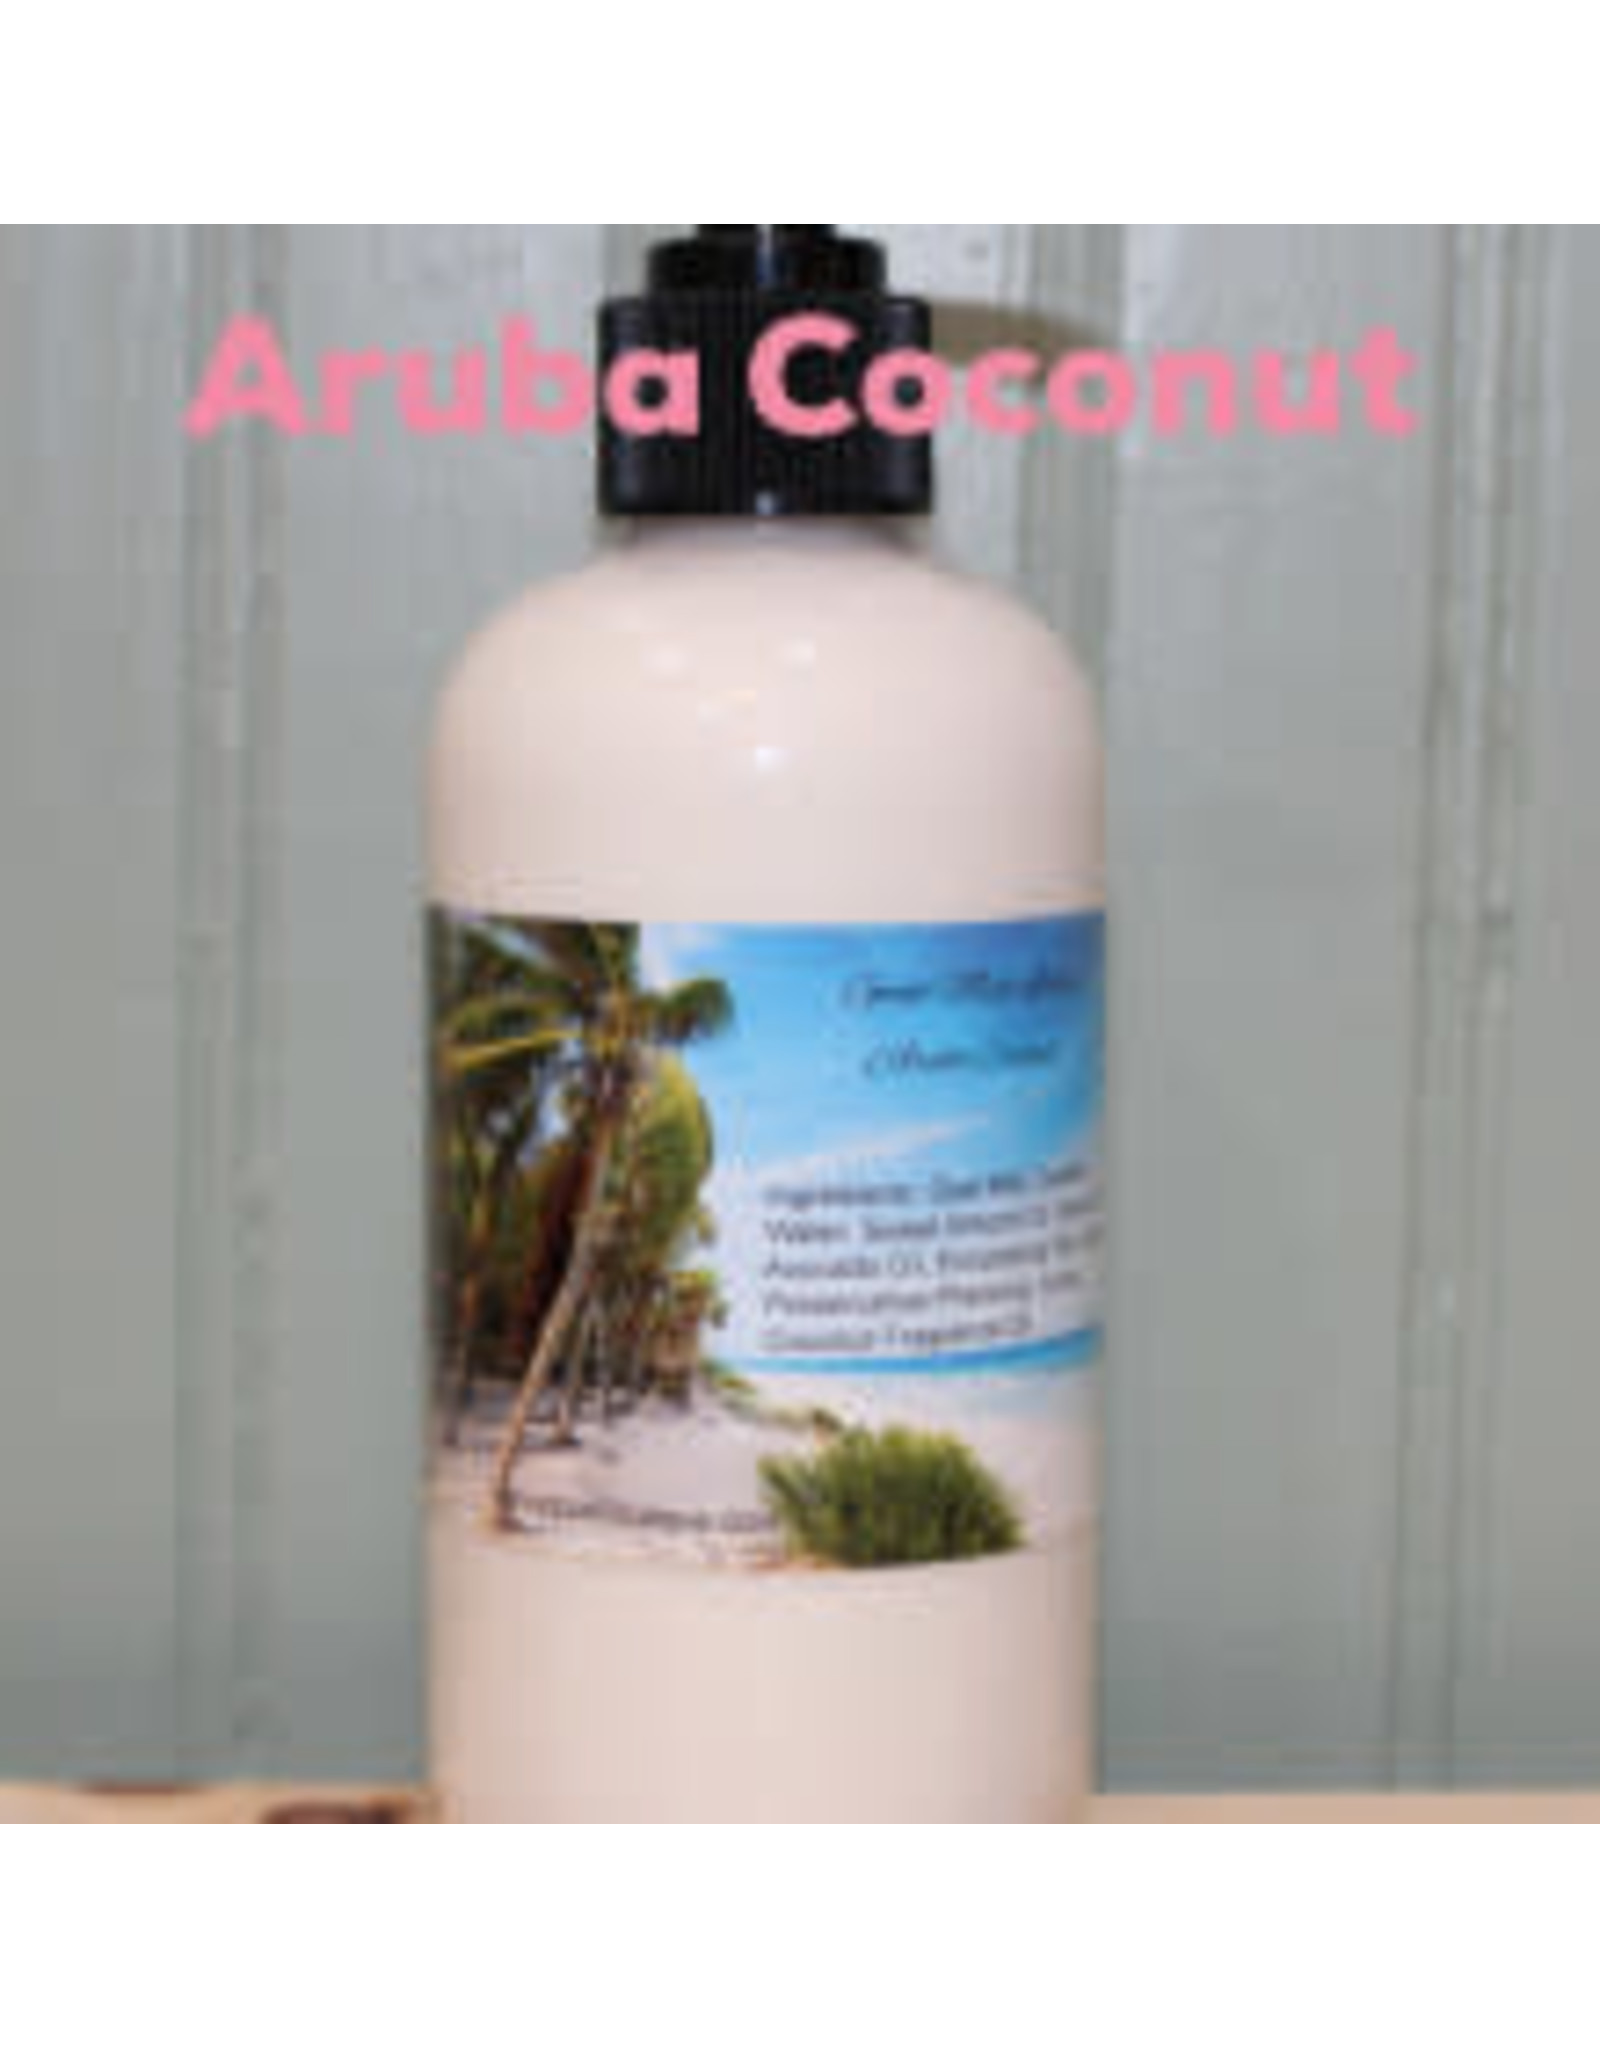 Fancy Goat Boutique Goat Milk Lotion  Aruba Coconut